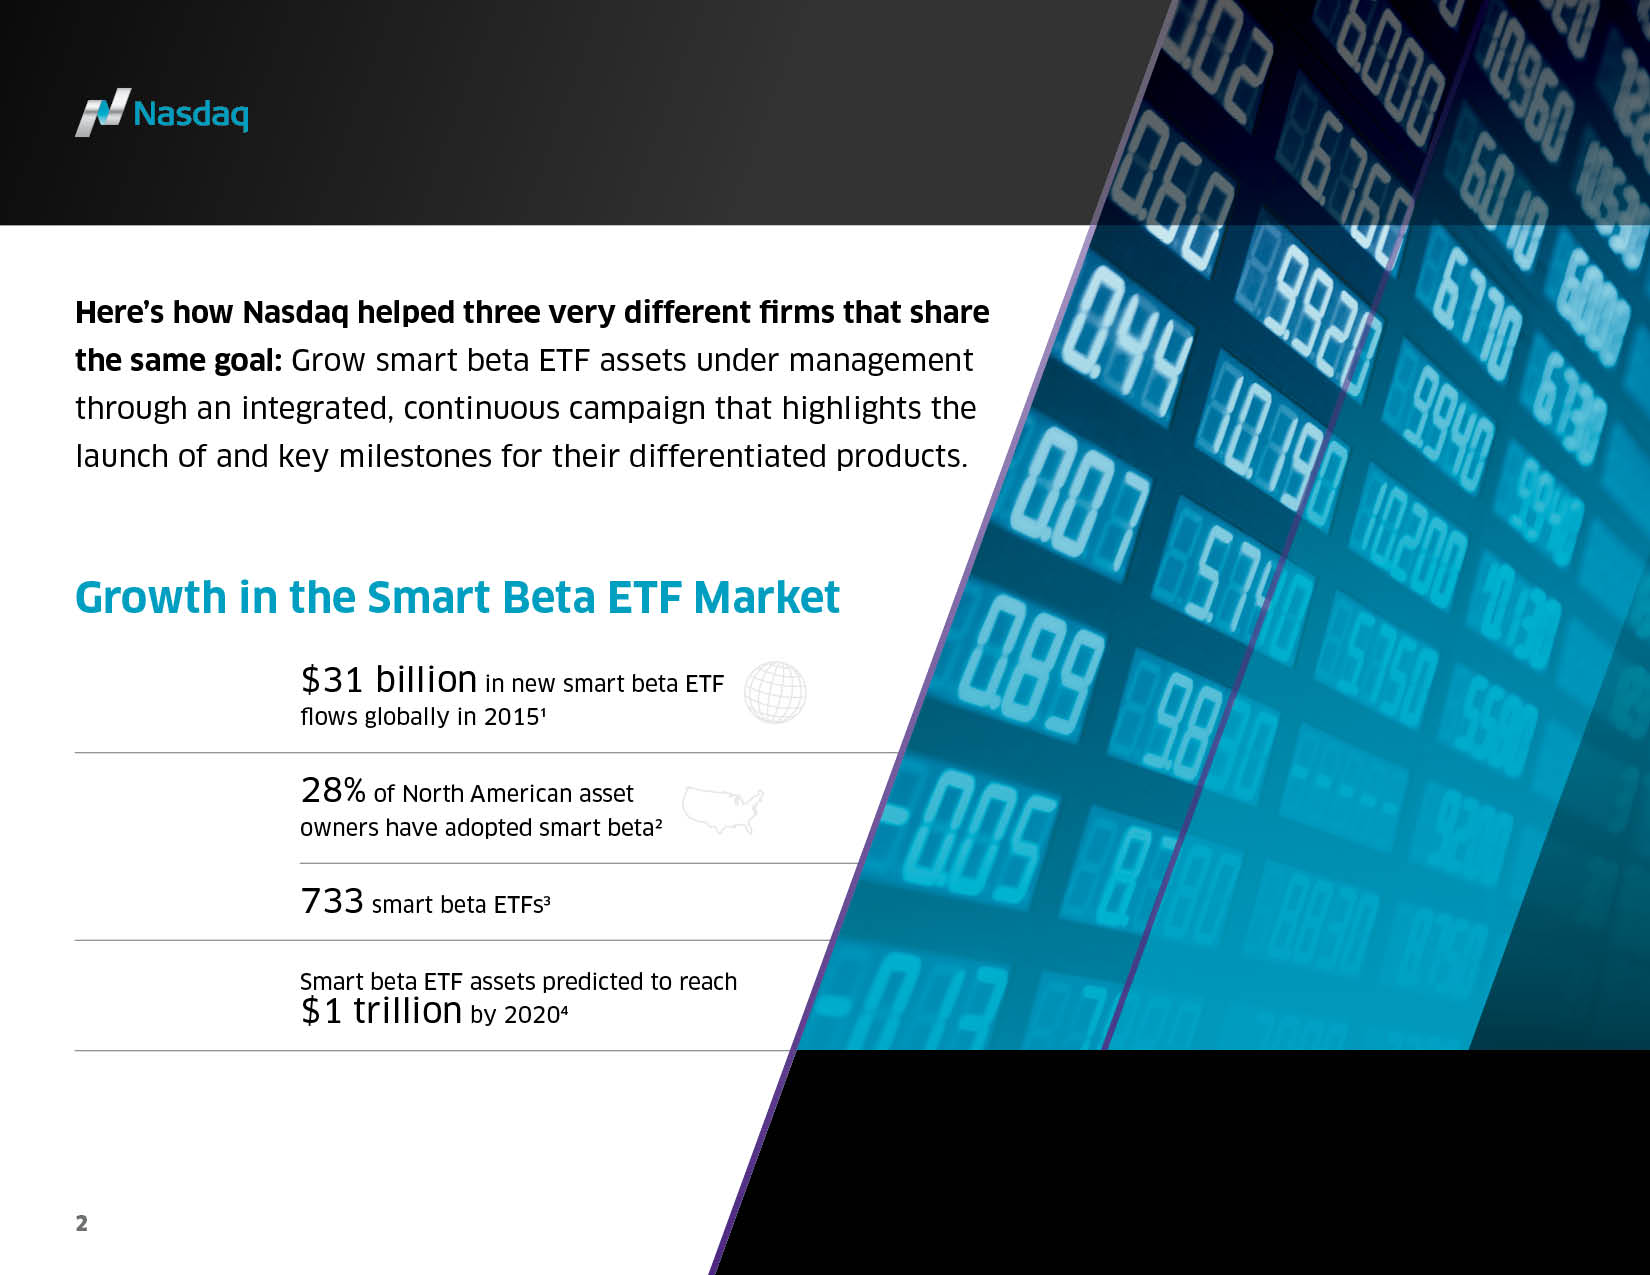 Here's how Nasdaq helped three very different firms that share the same goal: Grow smart beta ETF assets under management through an integrated, continuous campaign that highlights the launch of and key milestones for their differentiated products.